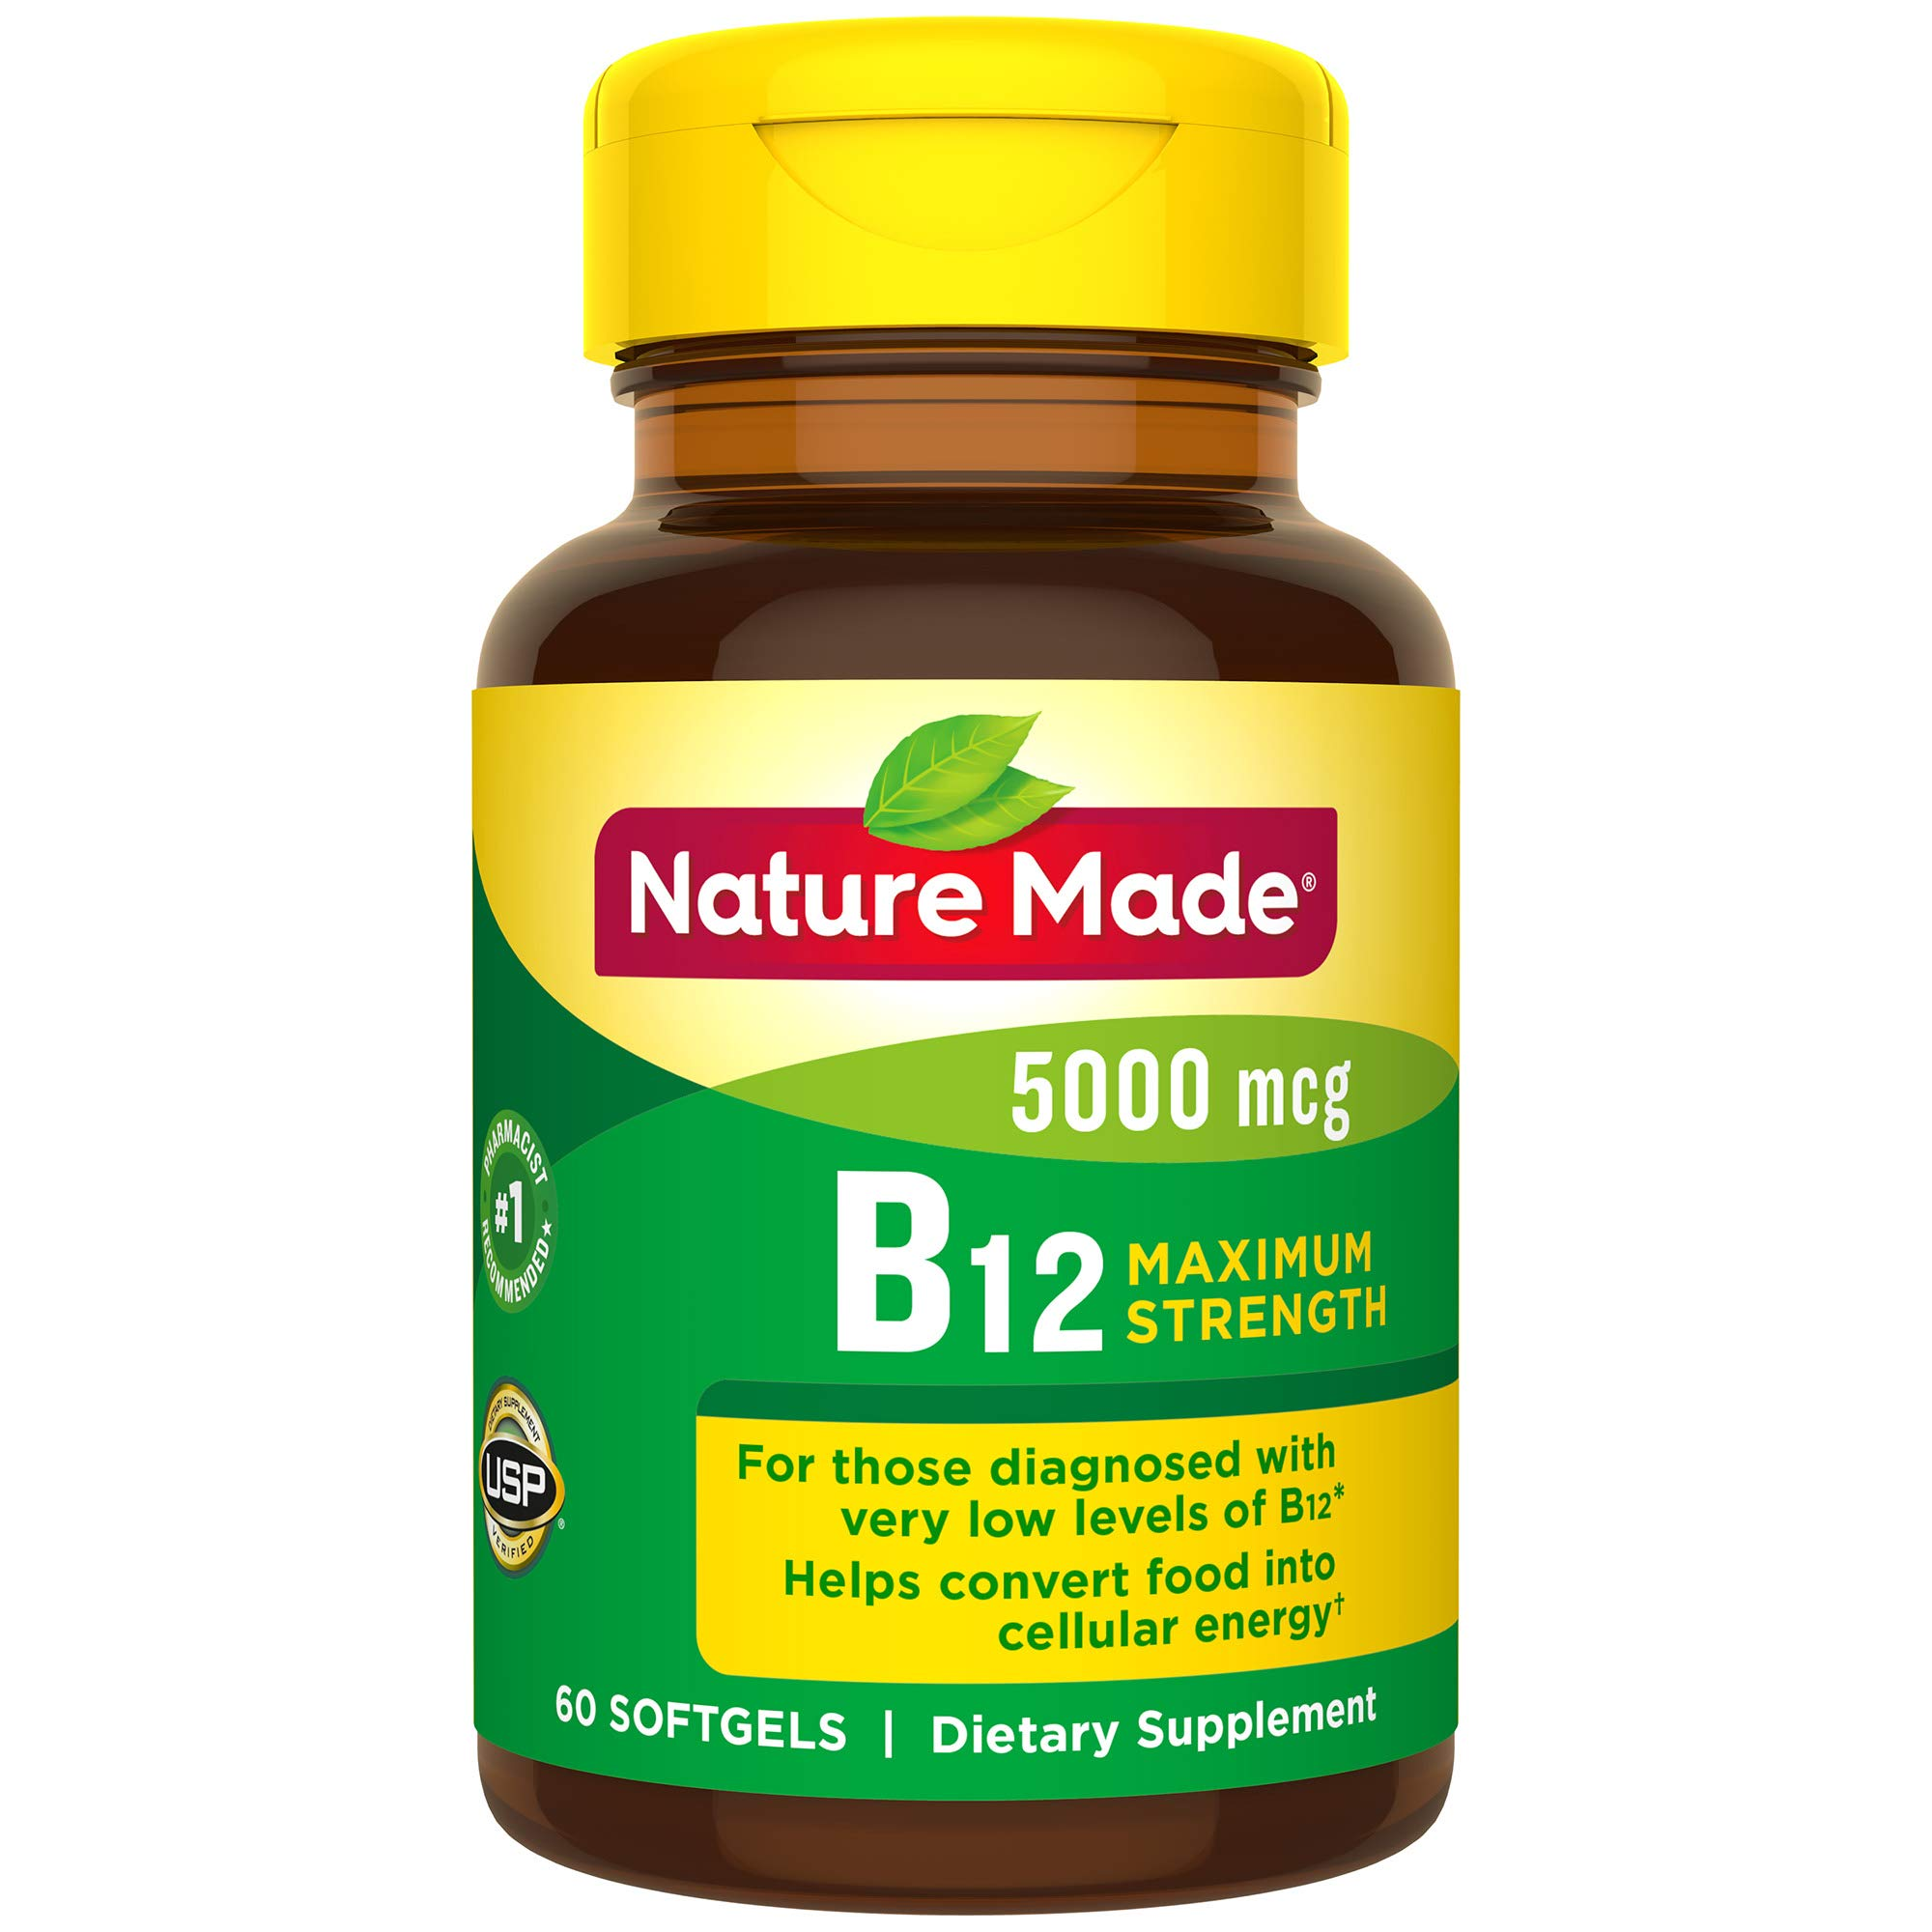 Nature Made Maximum Strength Vitamin B12 5000 mcg Softgels, 60 Count (Packaging May Vary) by Nature Made